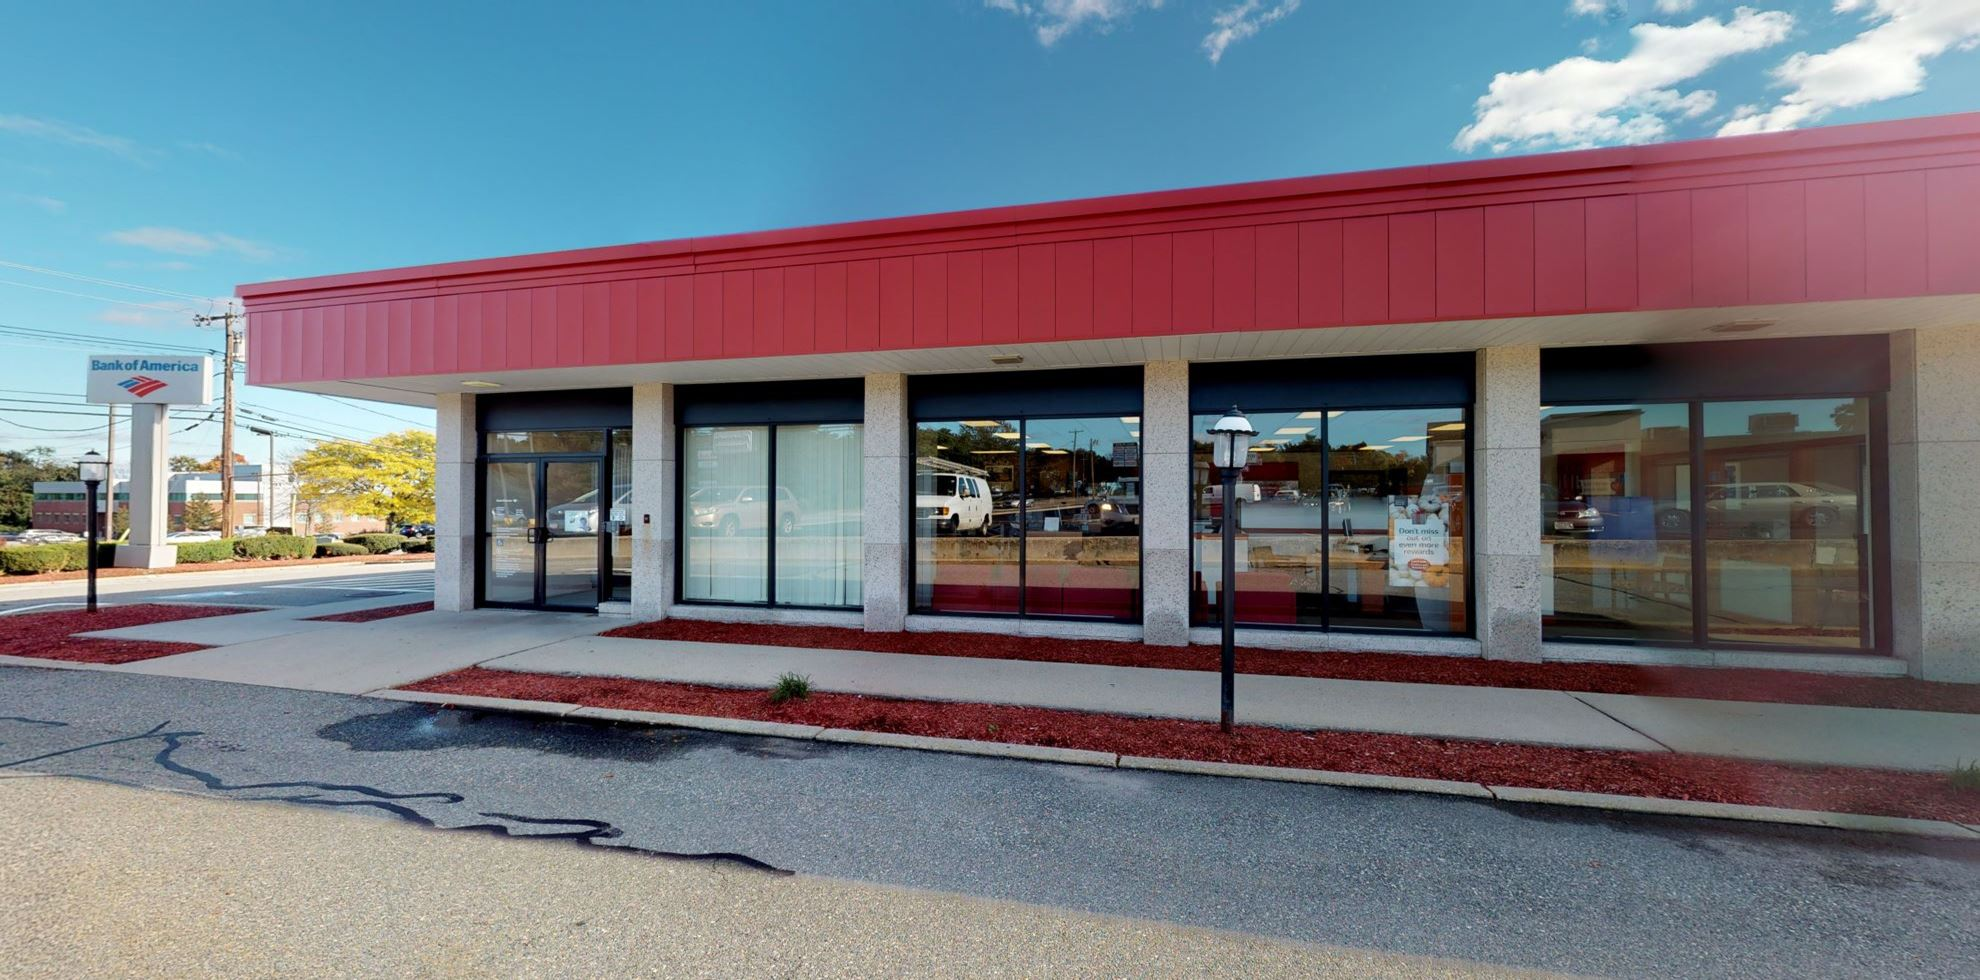 Bank of America financial center with drive-thru ATM | 82 Prospect St, Milford, MA 01757